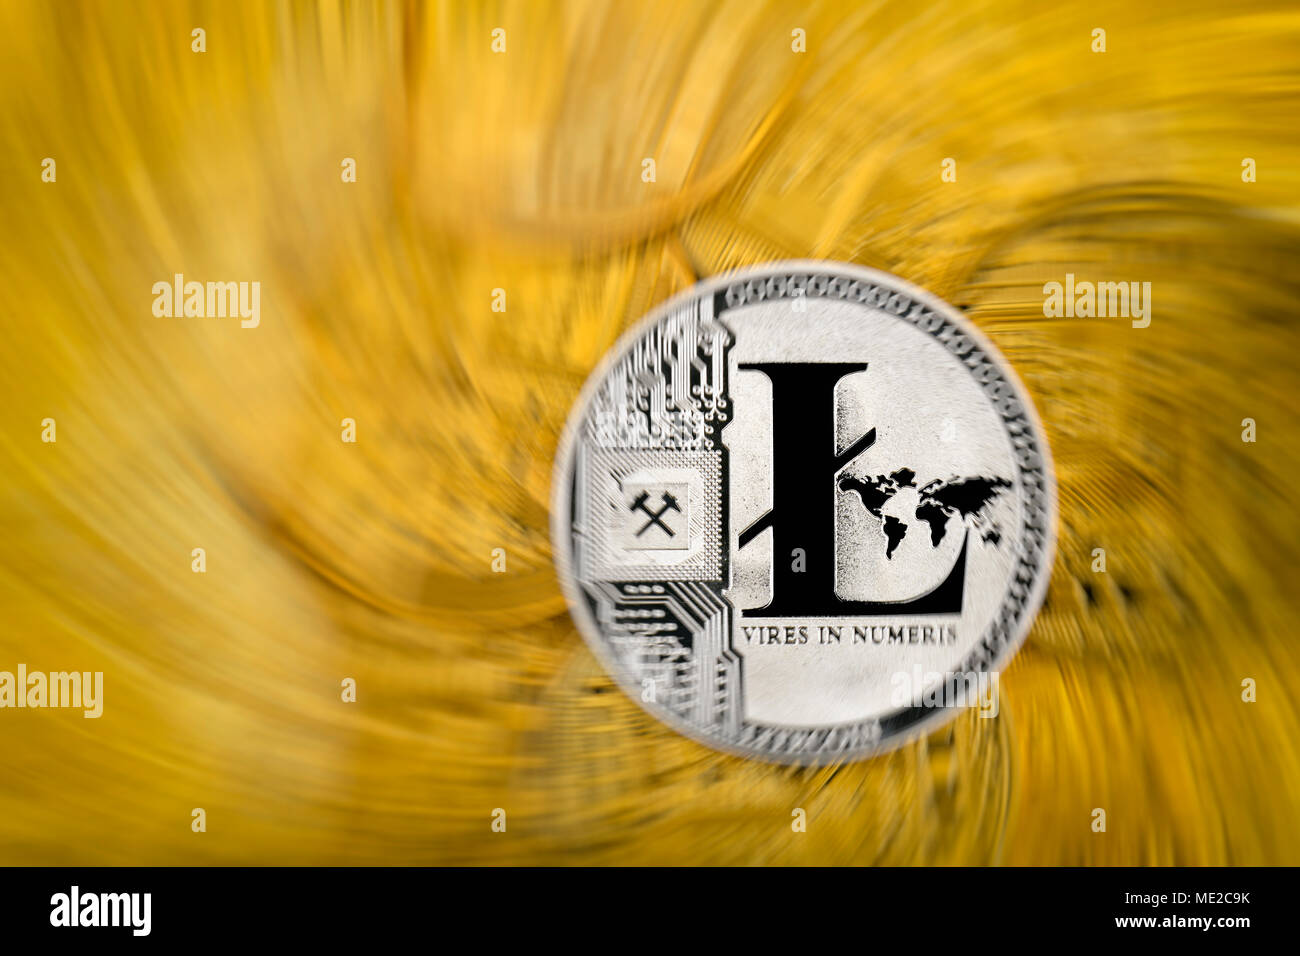 Symbol Image Turbulence Share Price Digital Currency Gold Physical